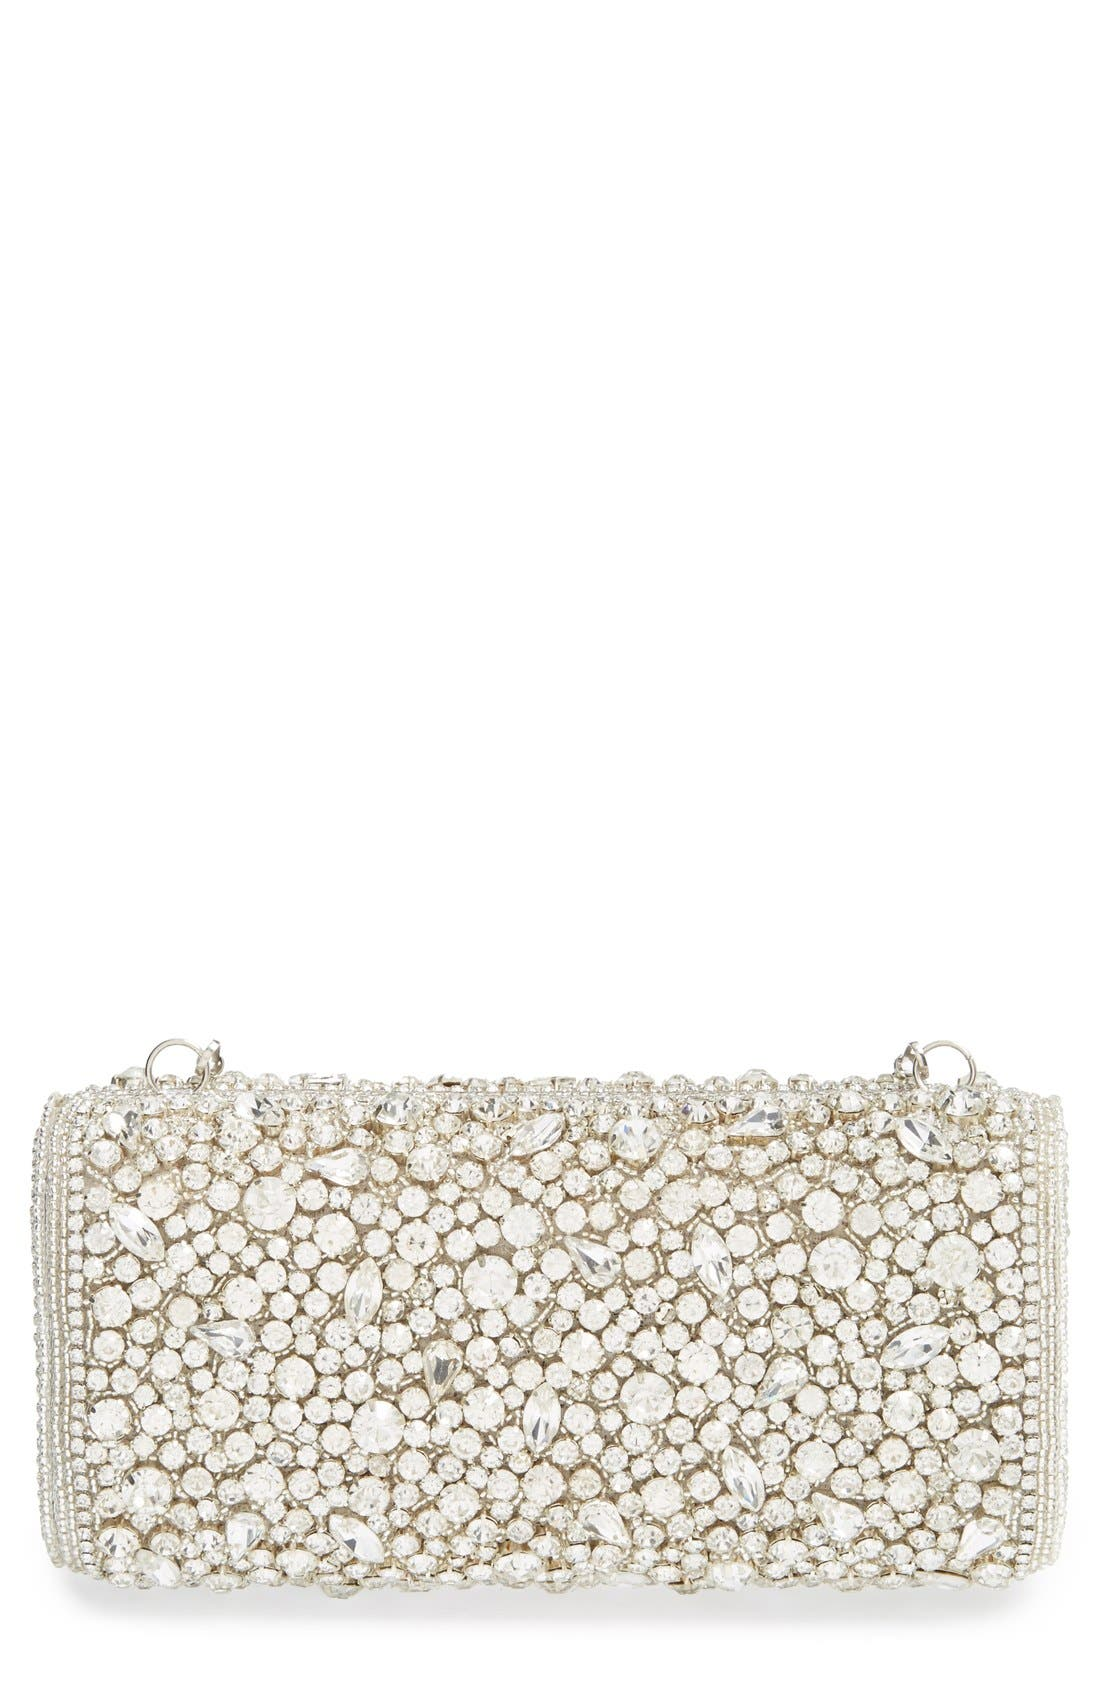 Alternate Image 1 Selected - Natasha Couture Beaded & Crystal Clutch